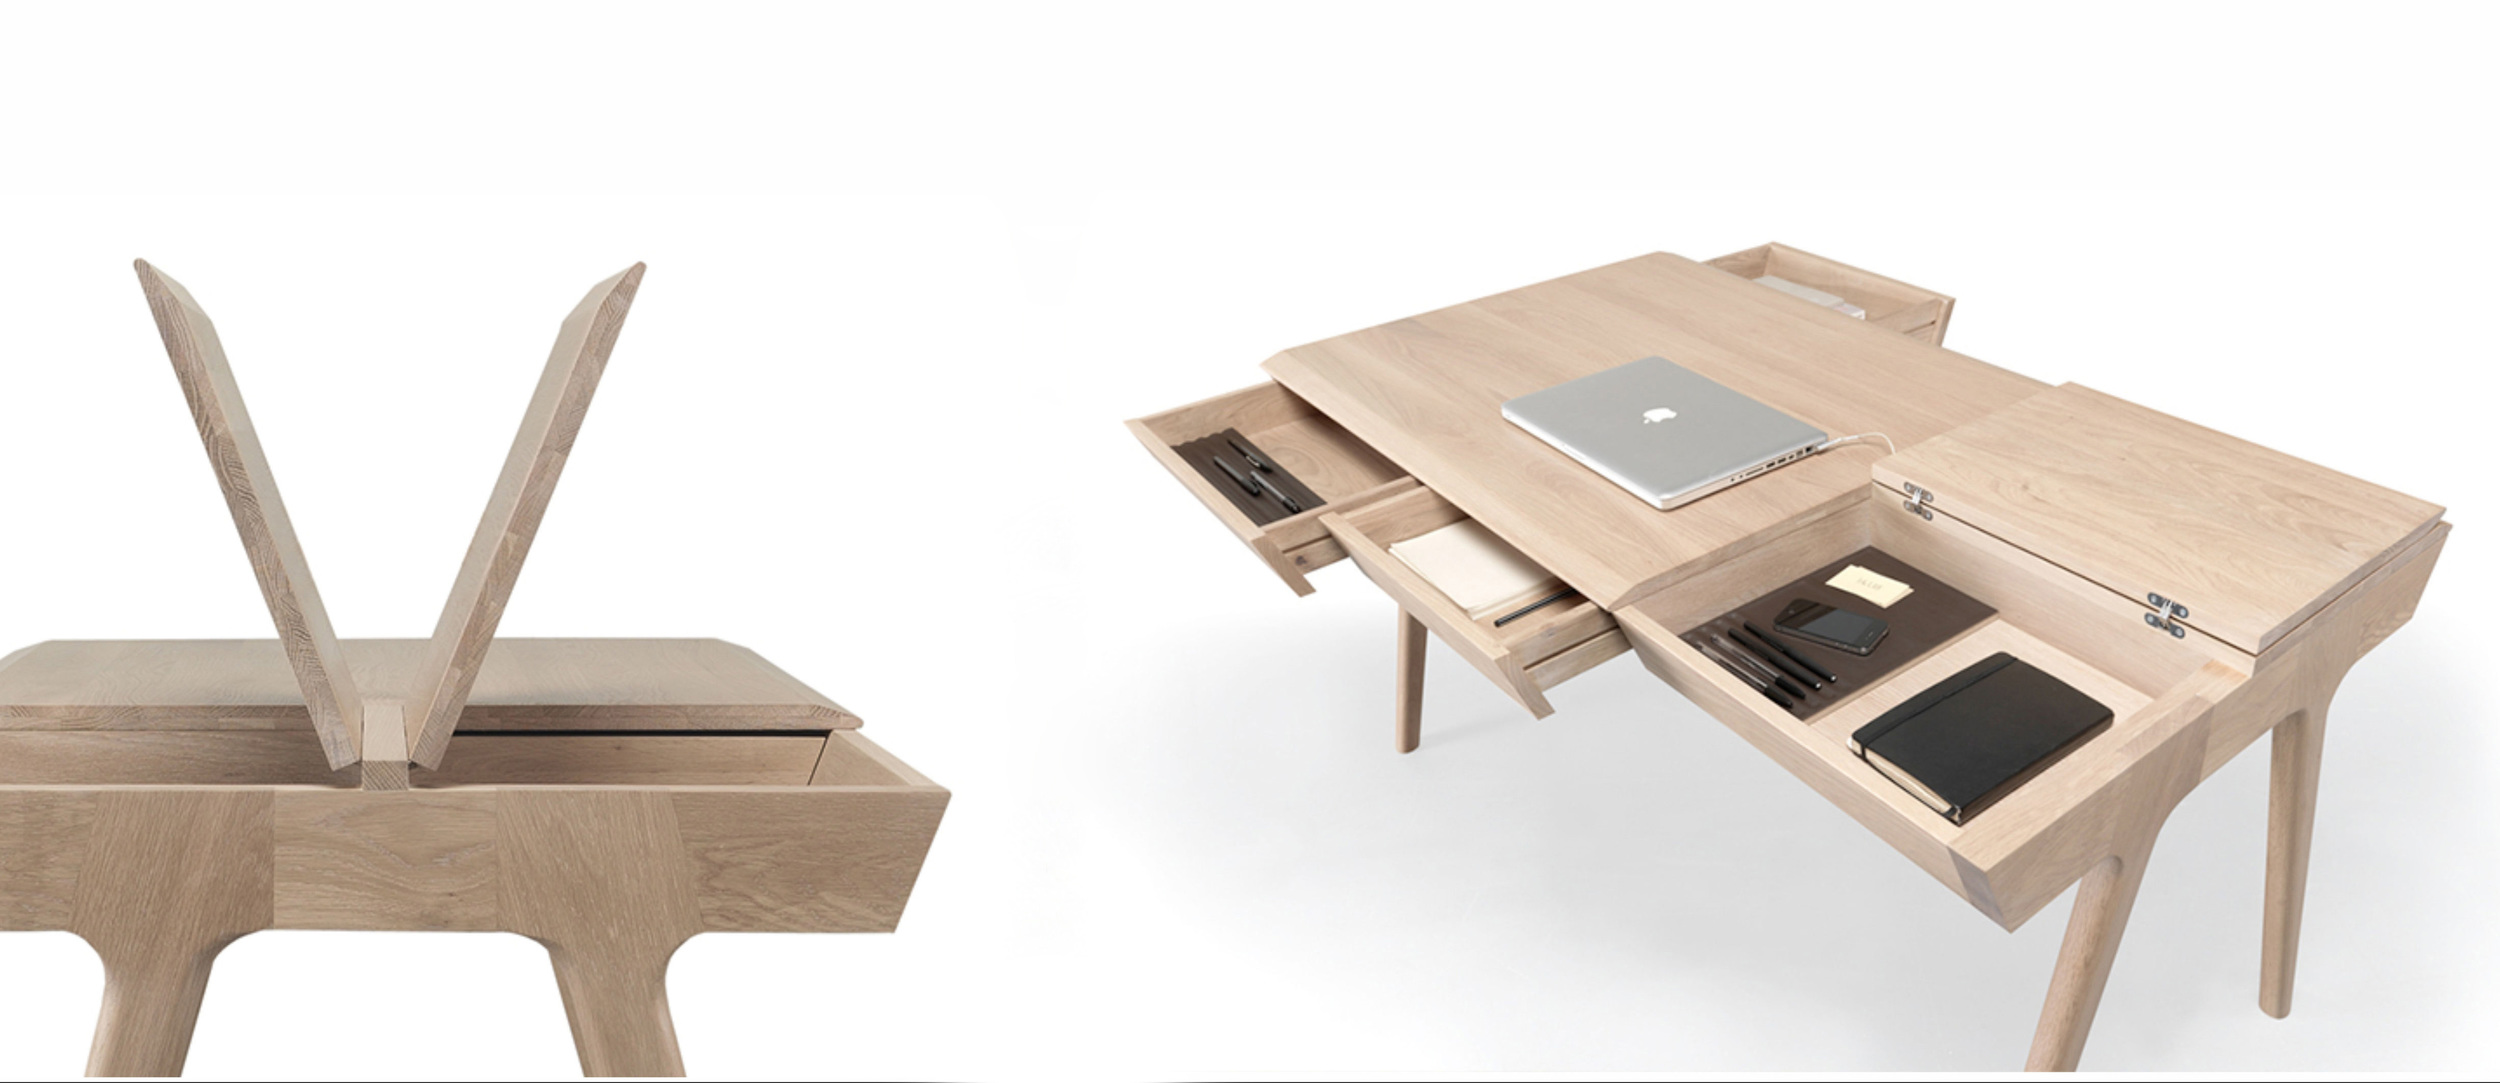 HOW TO KEEP YOUR WORKSPACE BEAUTIFUL AND ORGANIZED?  METIS  IS THE ANSWER FOR YOUR NEEDS, PROVIDING DIFFERENT COMPARTMENTS FOR YOUR STUFF AND OPTIMIZED TO ACCOMMODATE DIGITAL GADGETS.    READ MORE  .